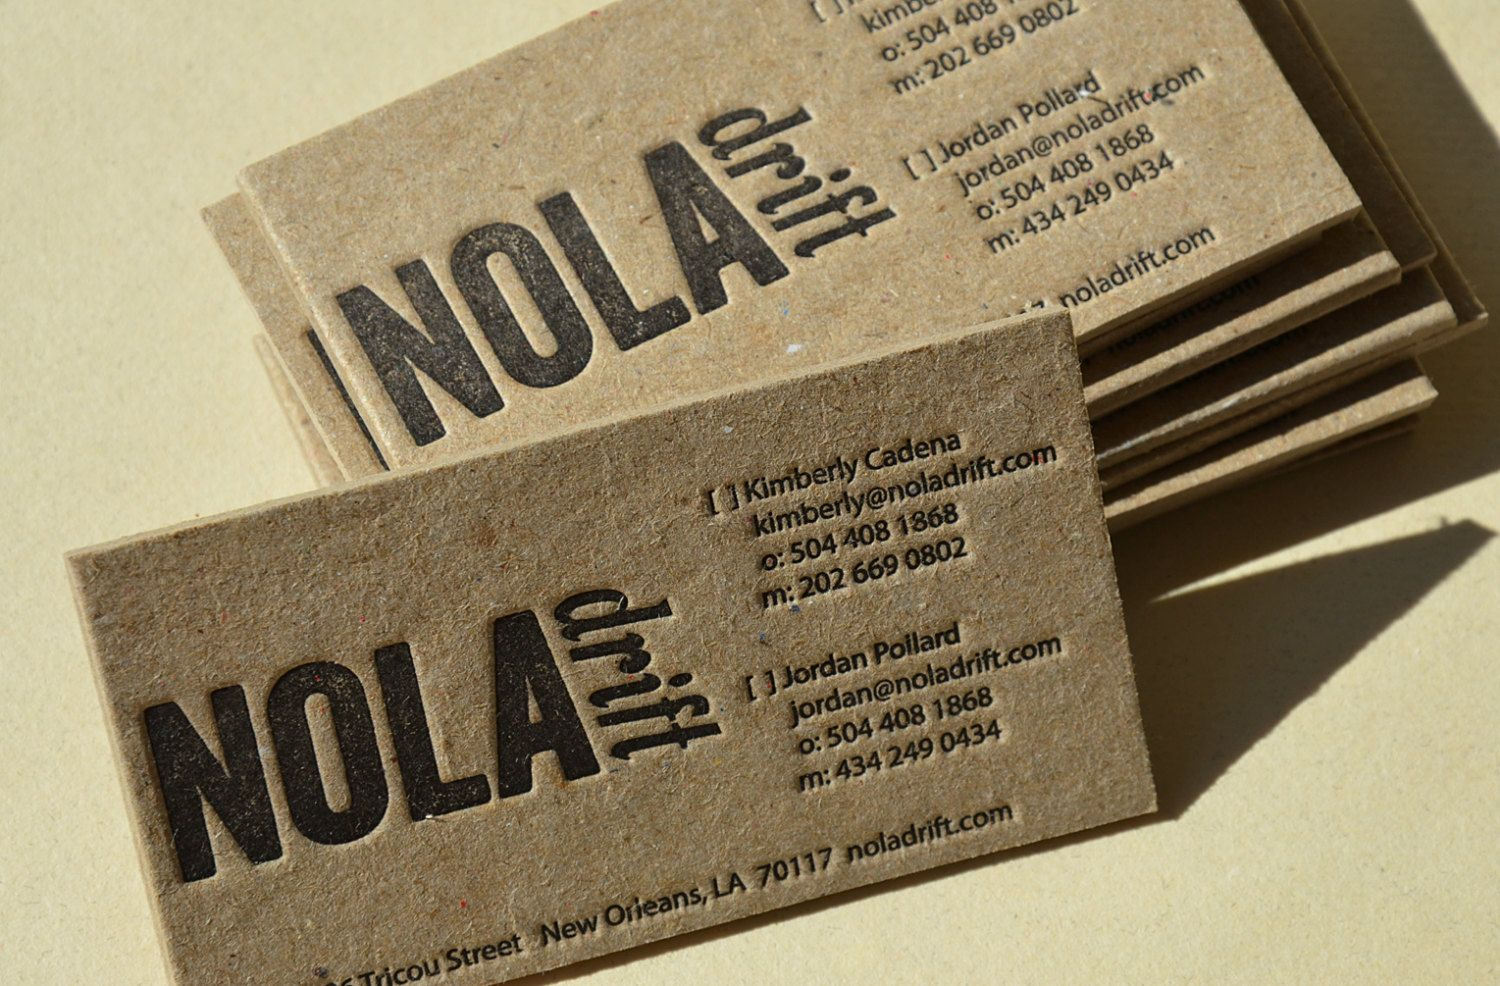 Letterpress business cards usa google search letterpress shop for business cards on etsy the place to express your creativity through the buying and selling of handmade and vintage goods reheart Images